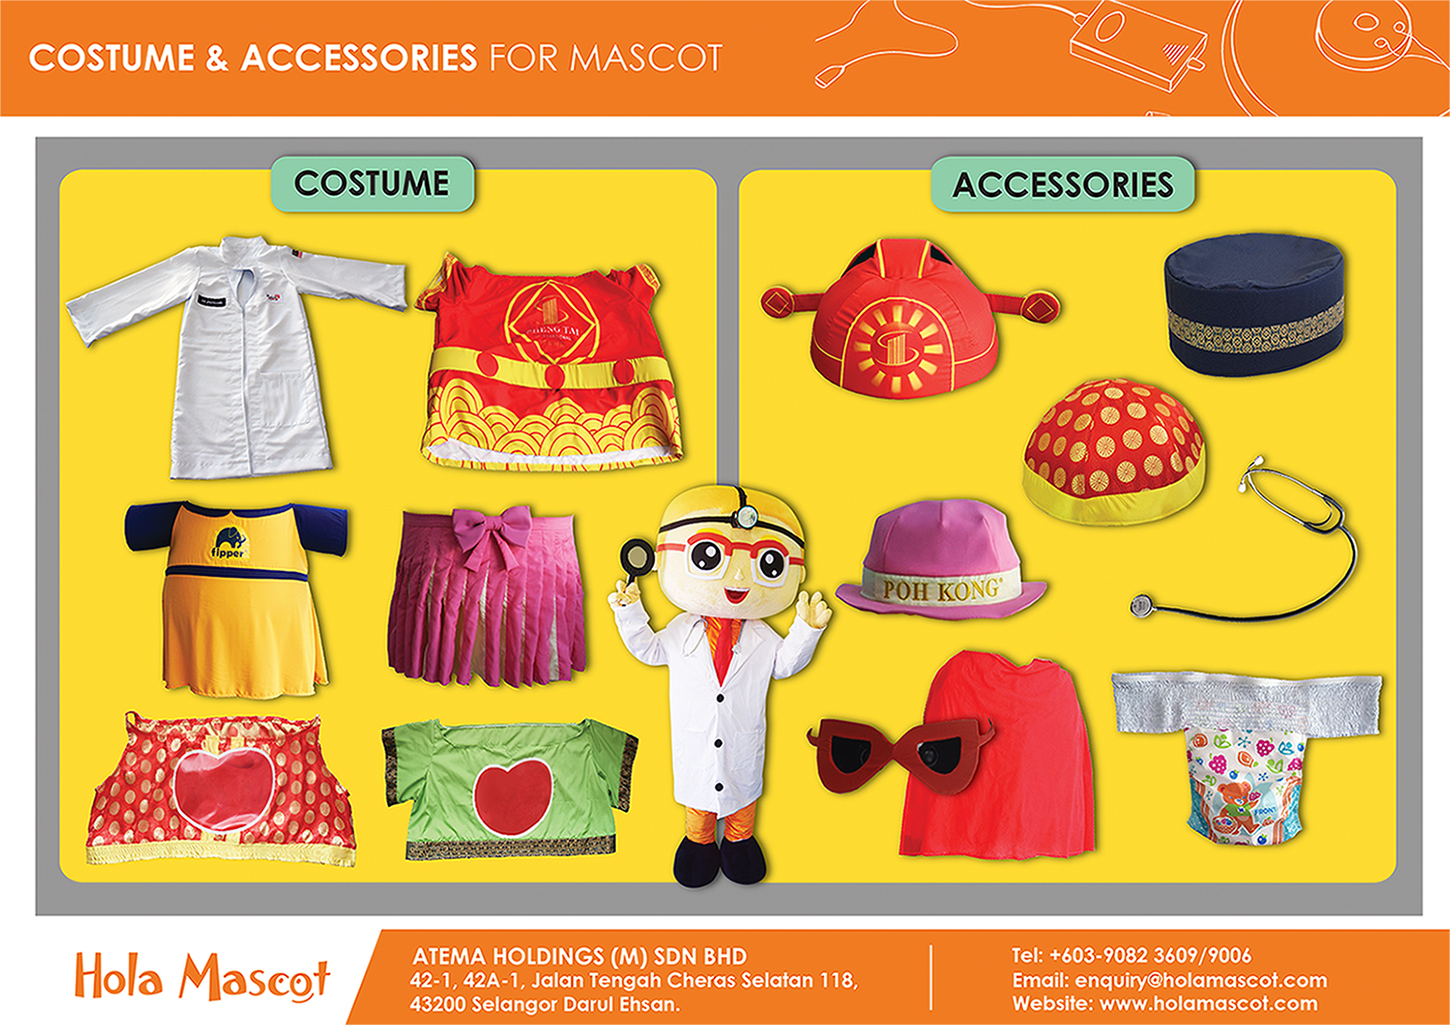 clothing accessories for mascot